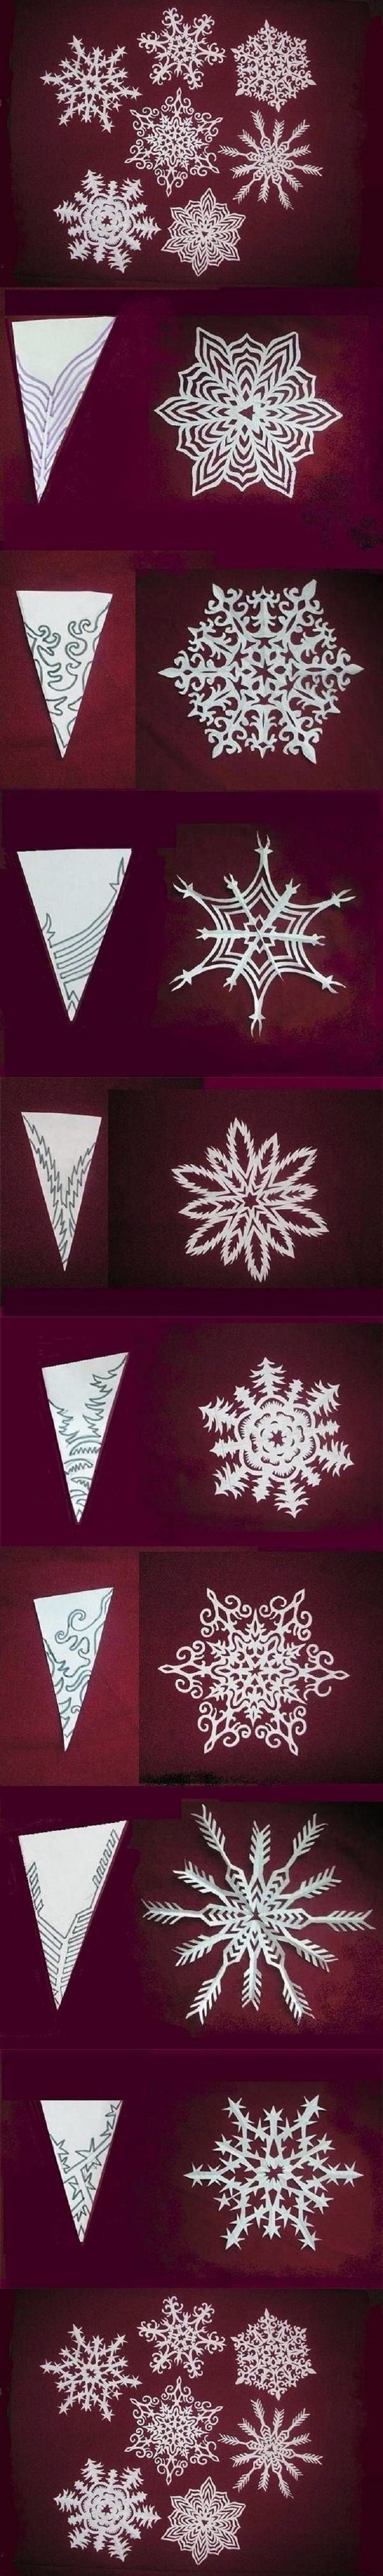 DIY Paper Snowflakes - 15 Most PINteresting DIY Paper Decorations | GleamItUp